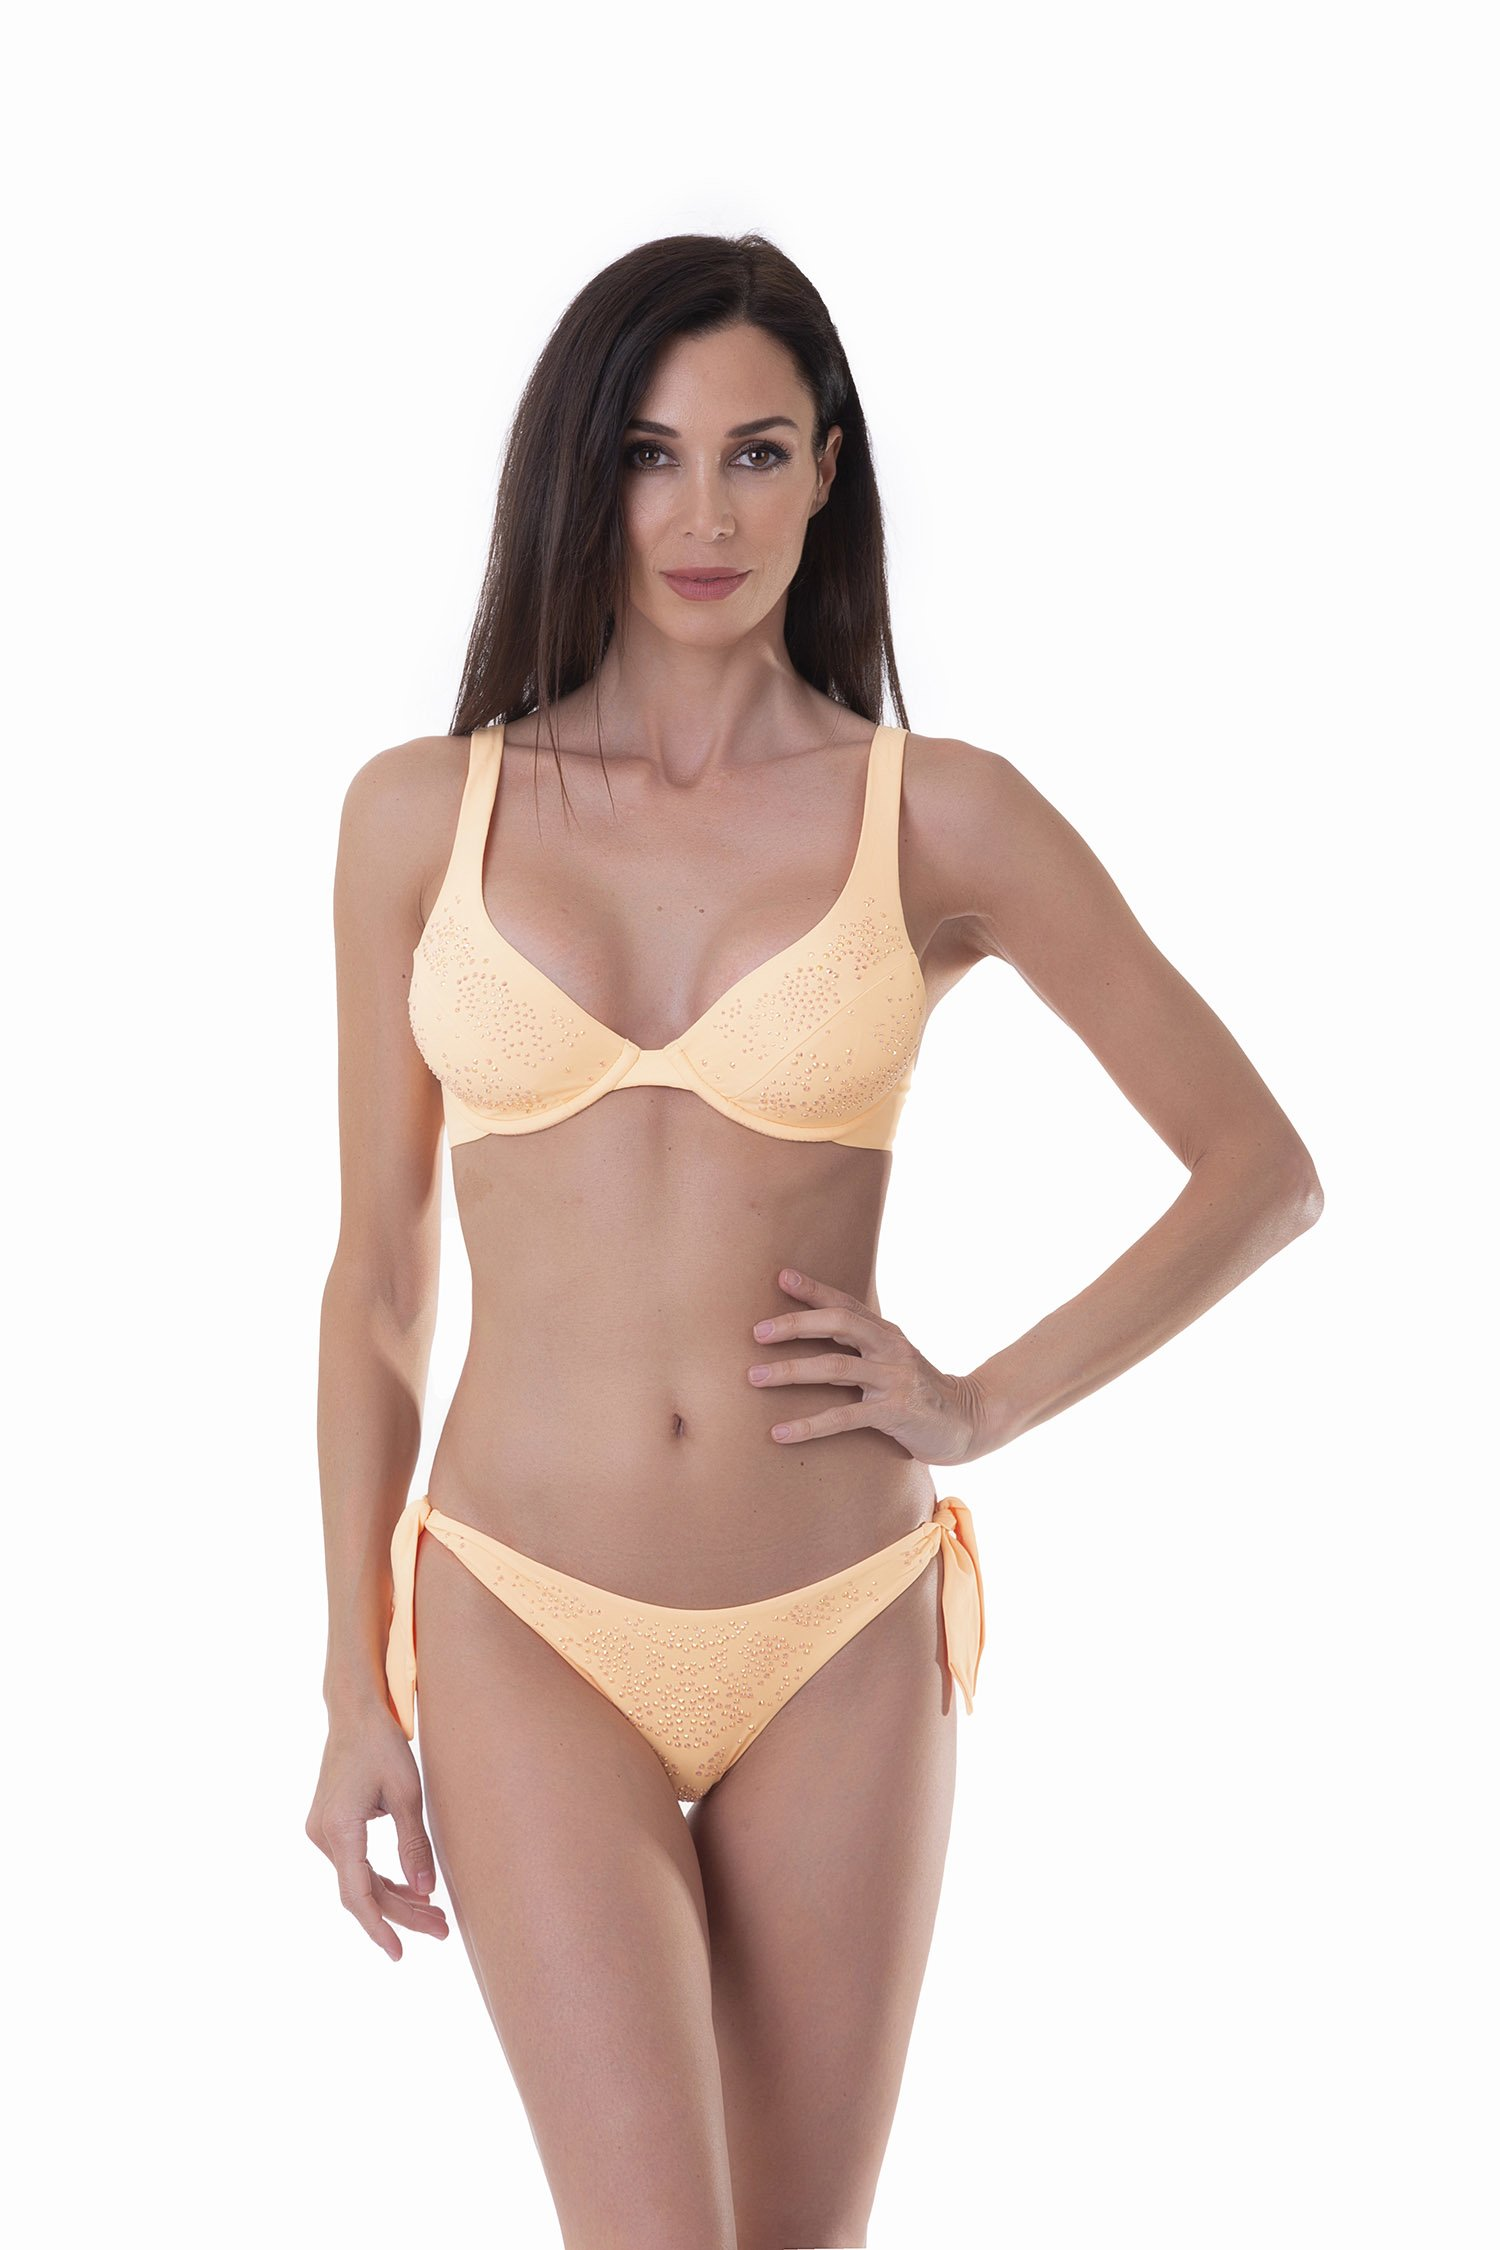 HALTER TRIANGLE BIKINI SOLID COLOUR WITH RHINESTONES - Pesco Peperino